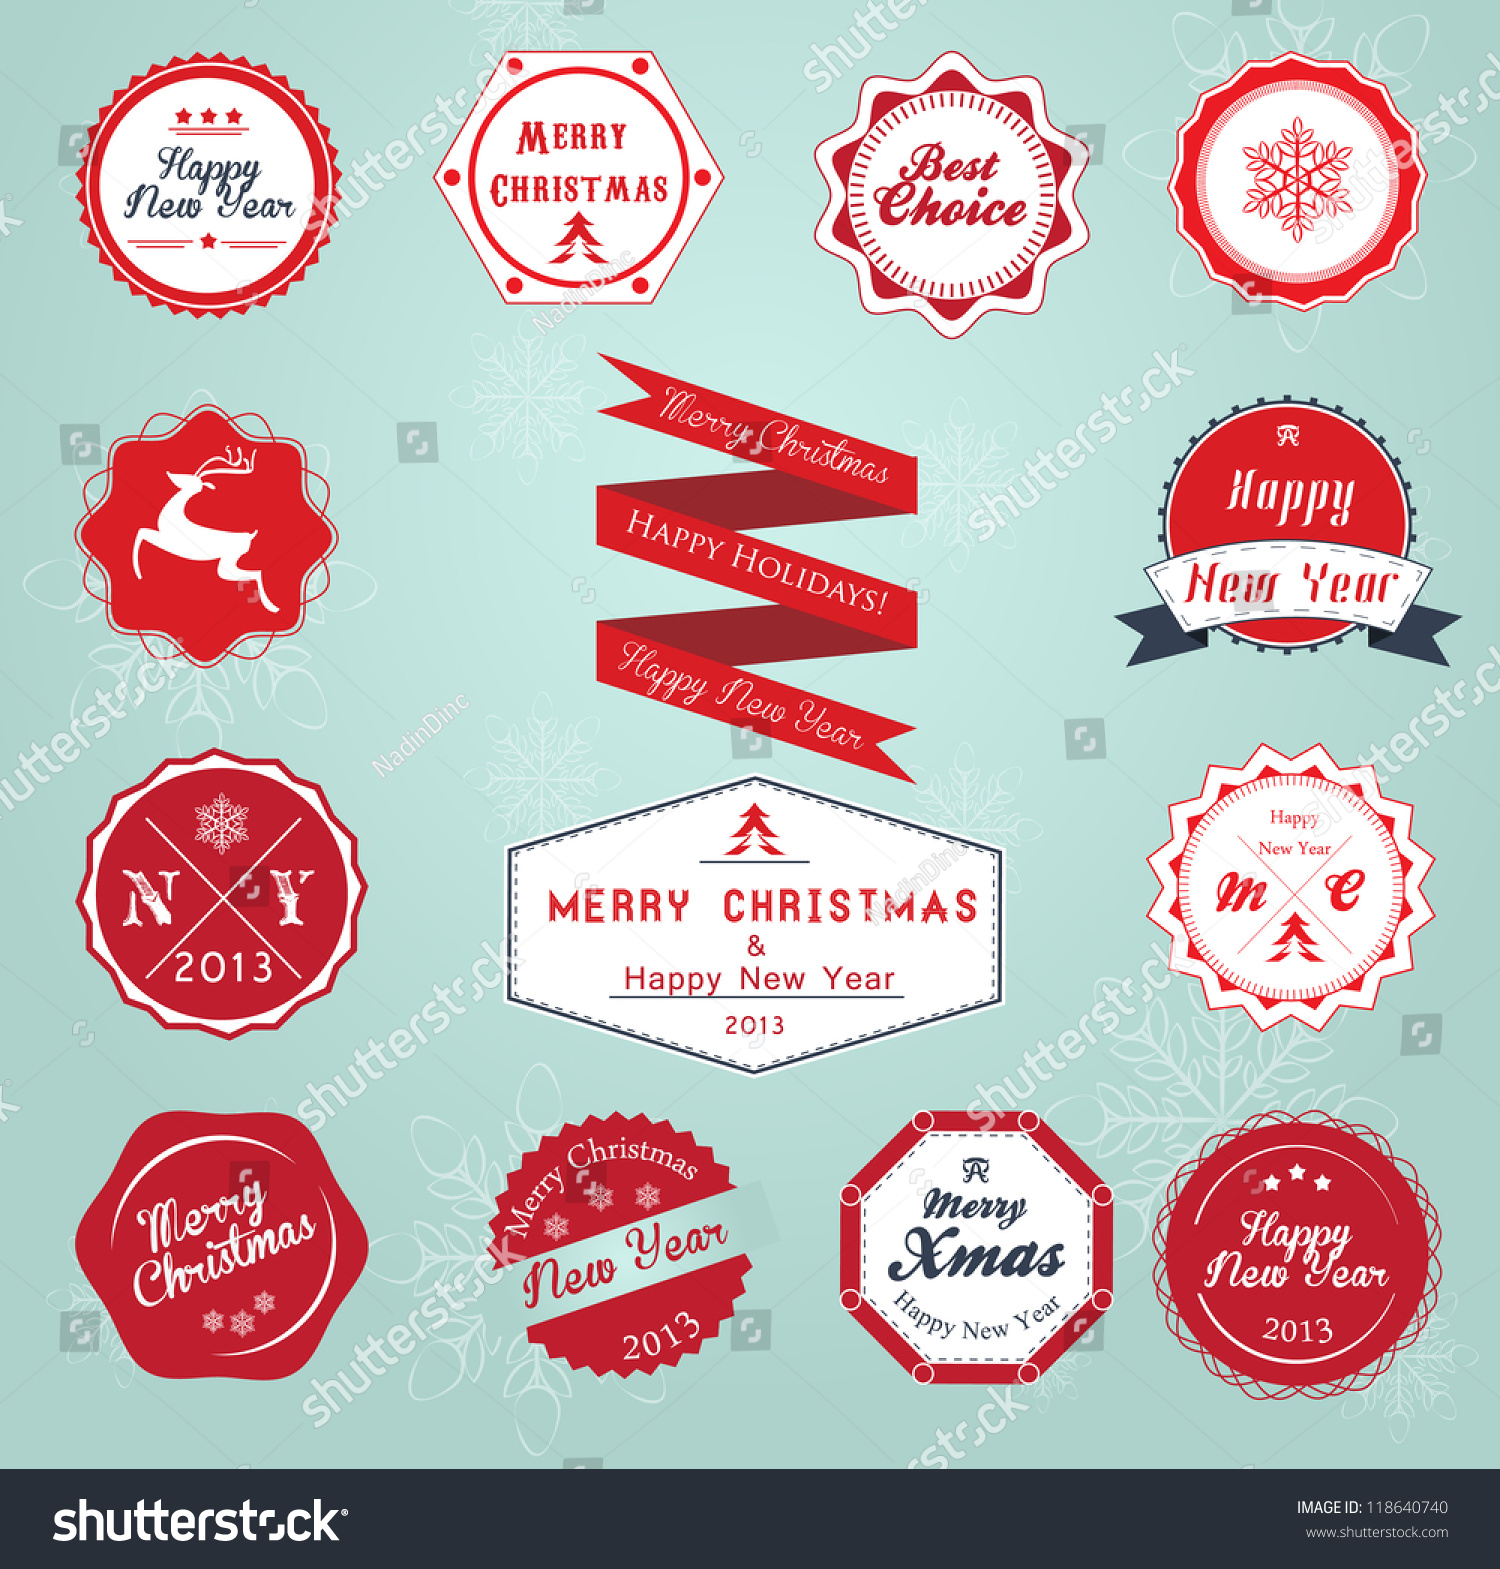 vintage styled christmas and new year label collection